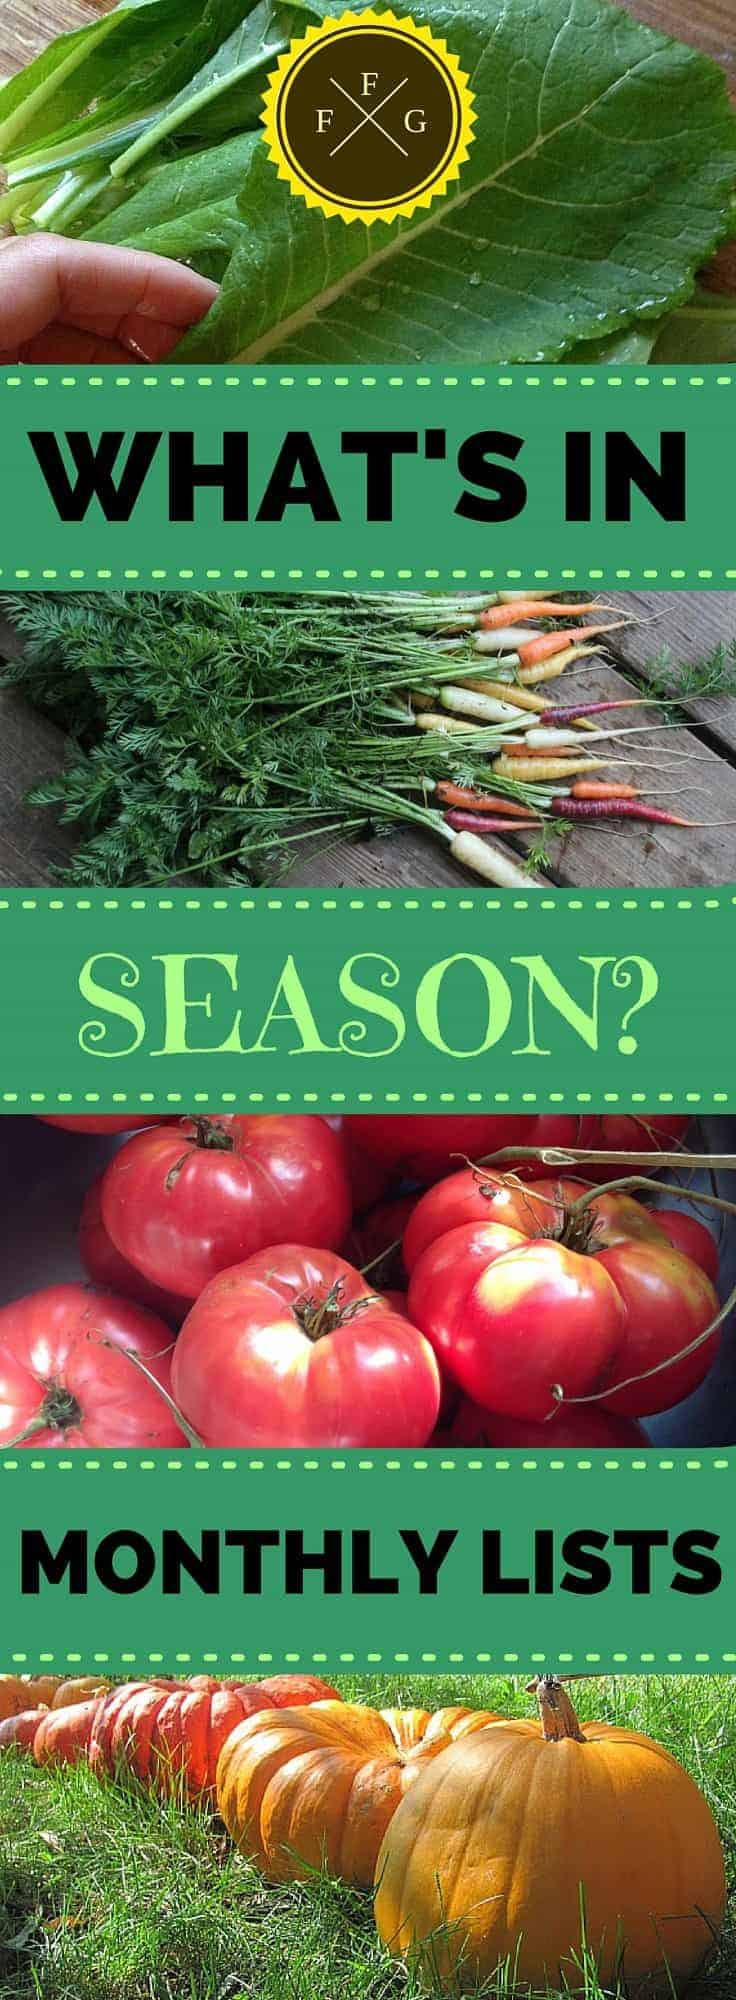 Learn what produce is in season with these montly lists